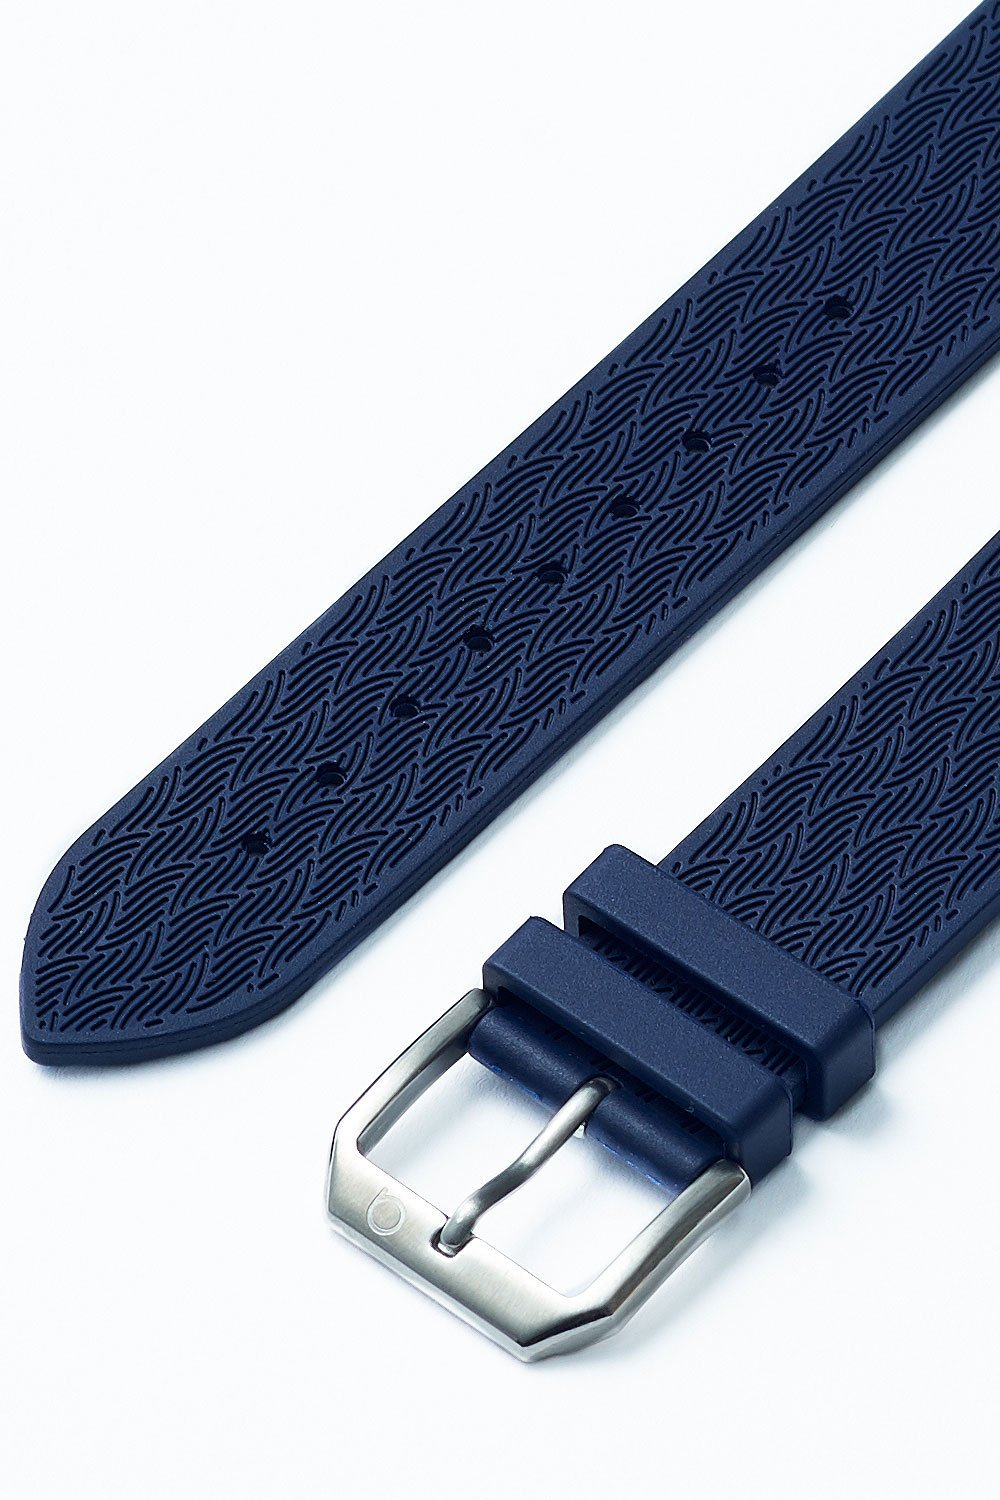 RUBBER STRAP BLUE